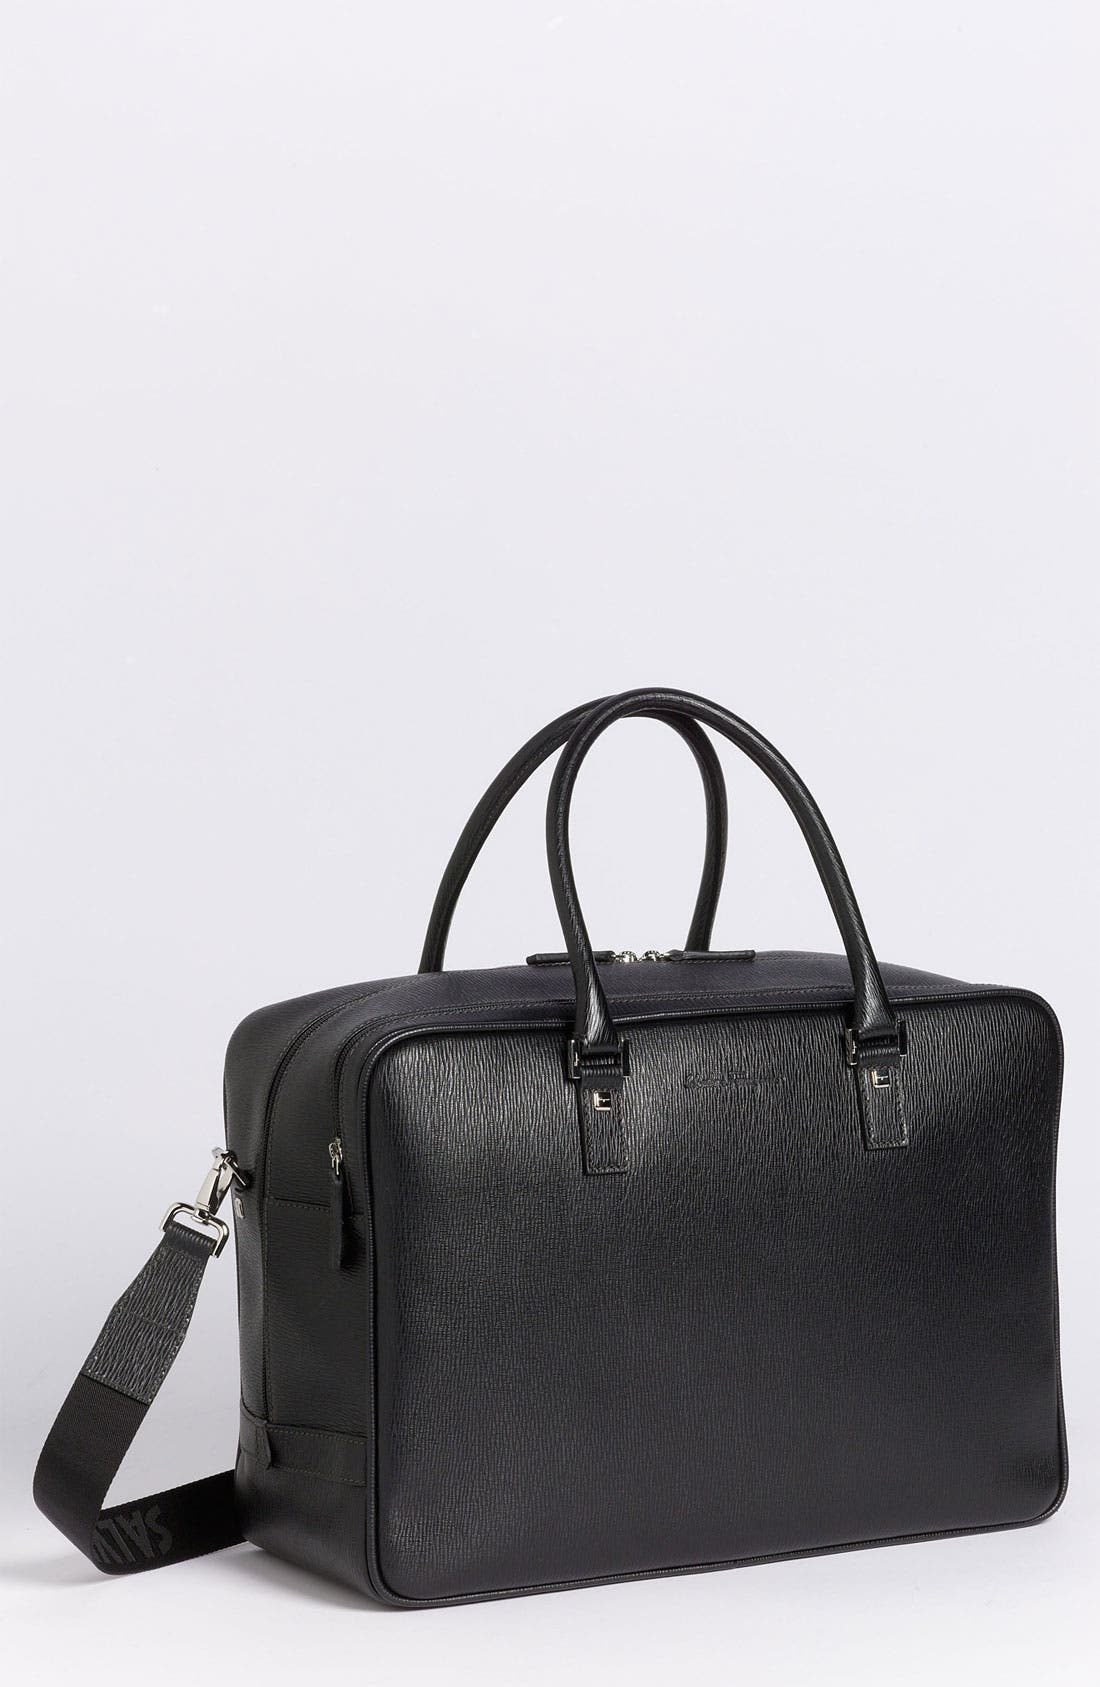 Main Image - Salvatore Ferragamo 'Revival' Bag